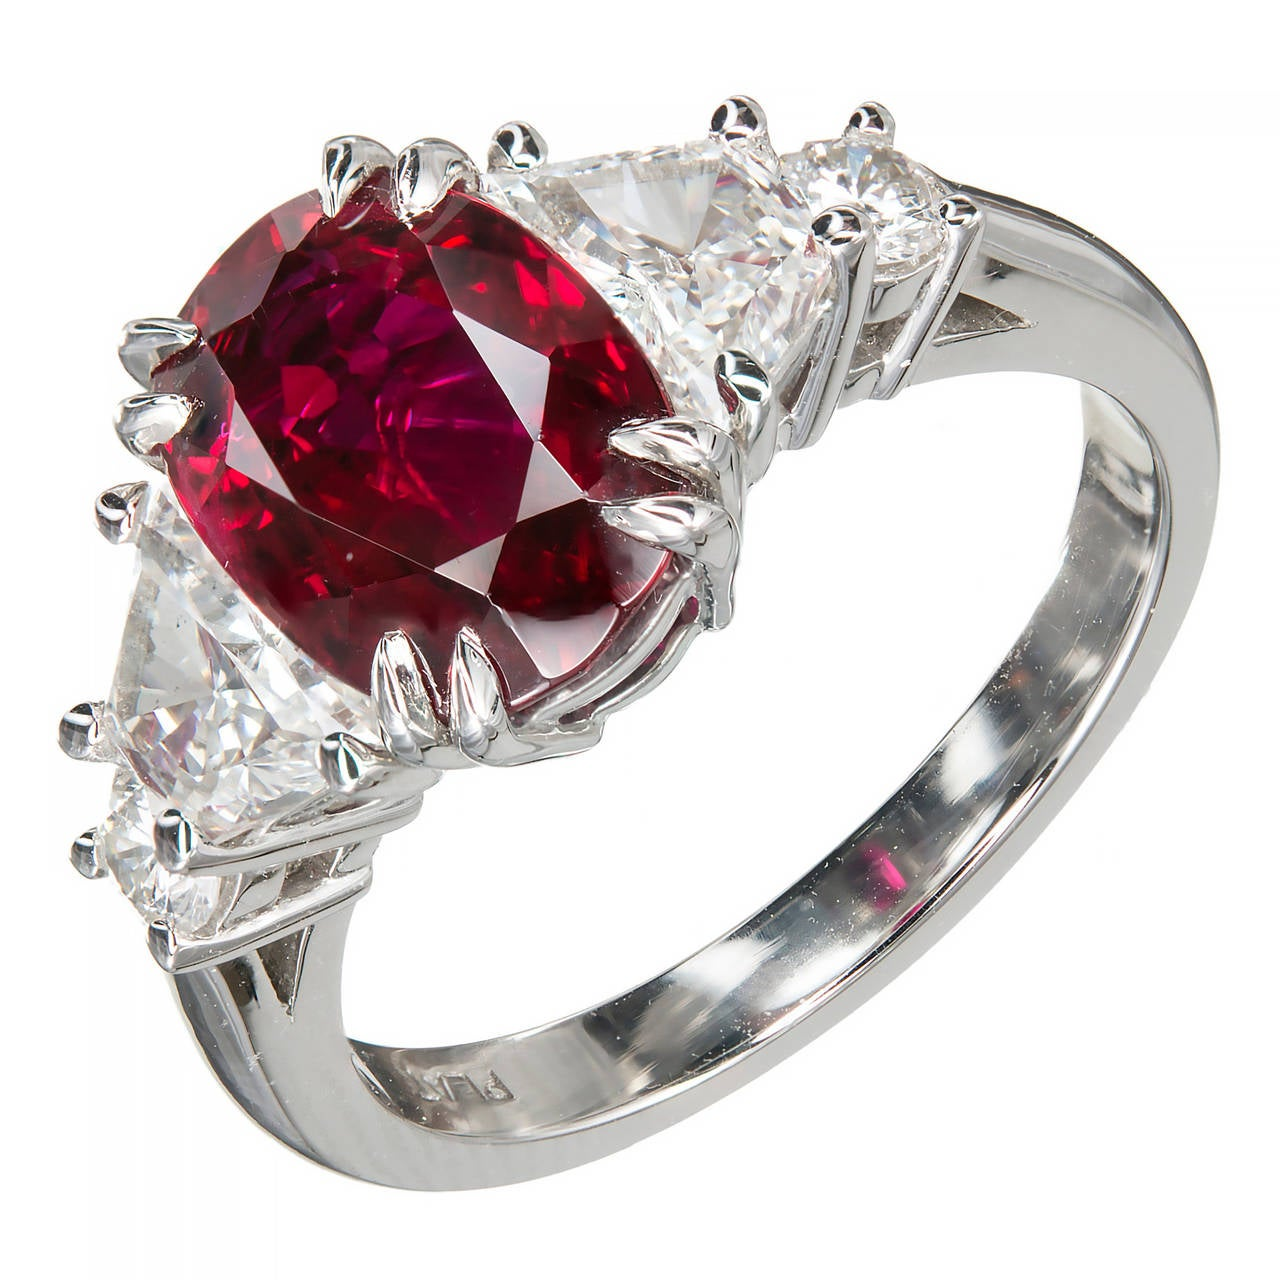 Peter Suchy 296 Carat Red Oval Ruby Diamond Platinum Engagement Ring 1